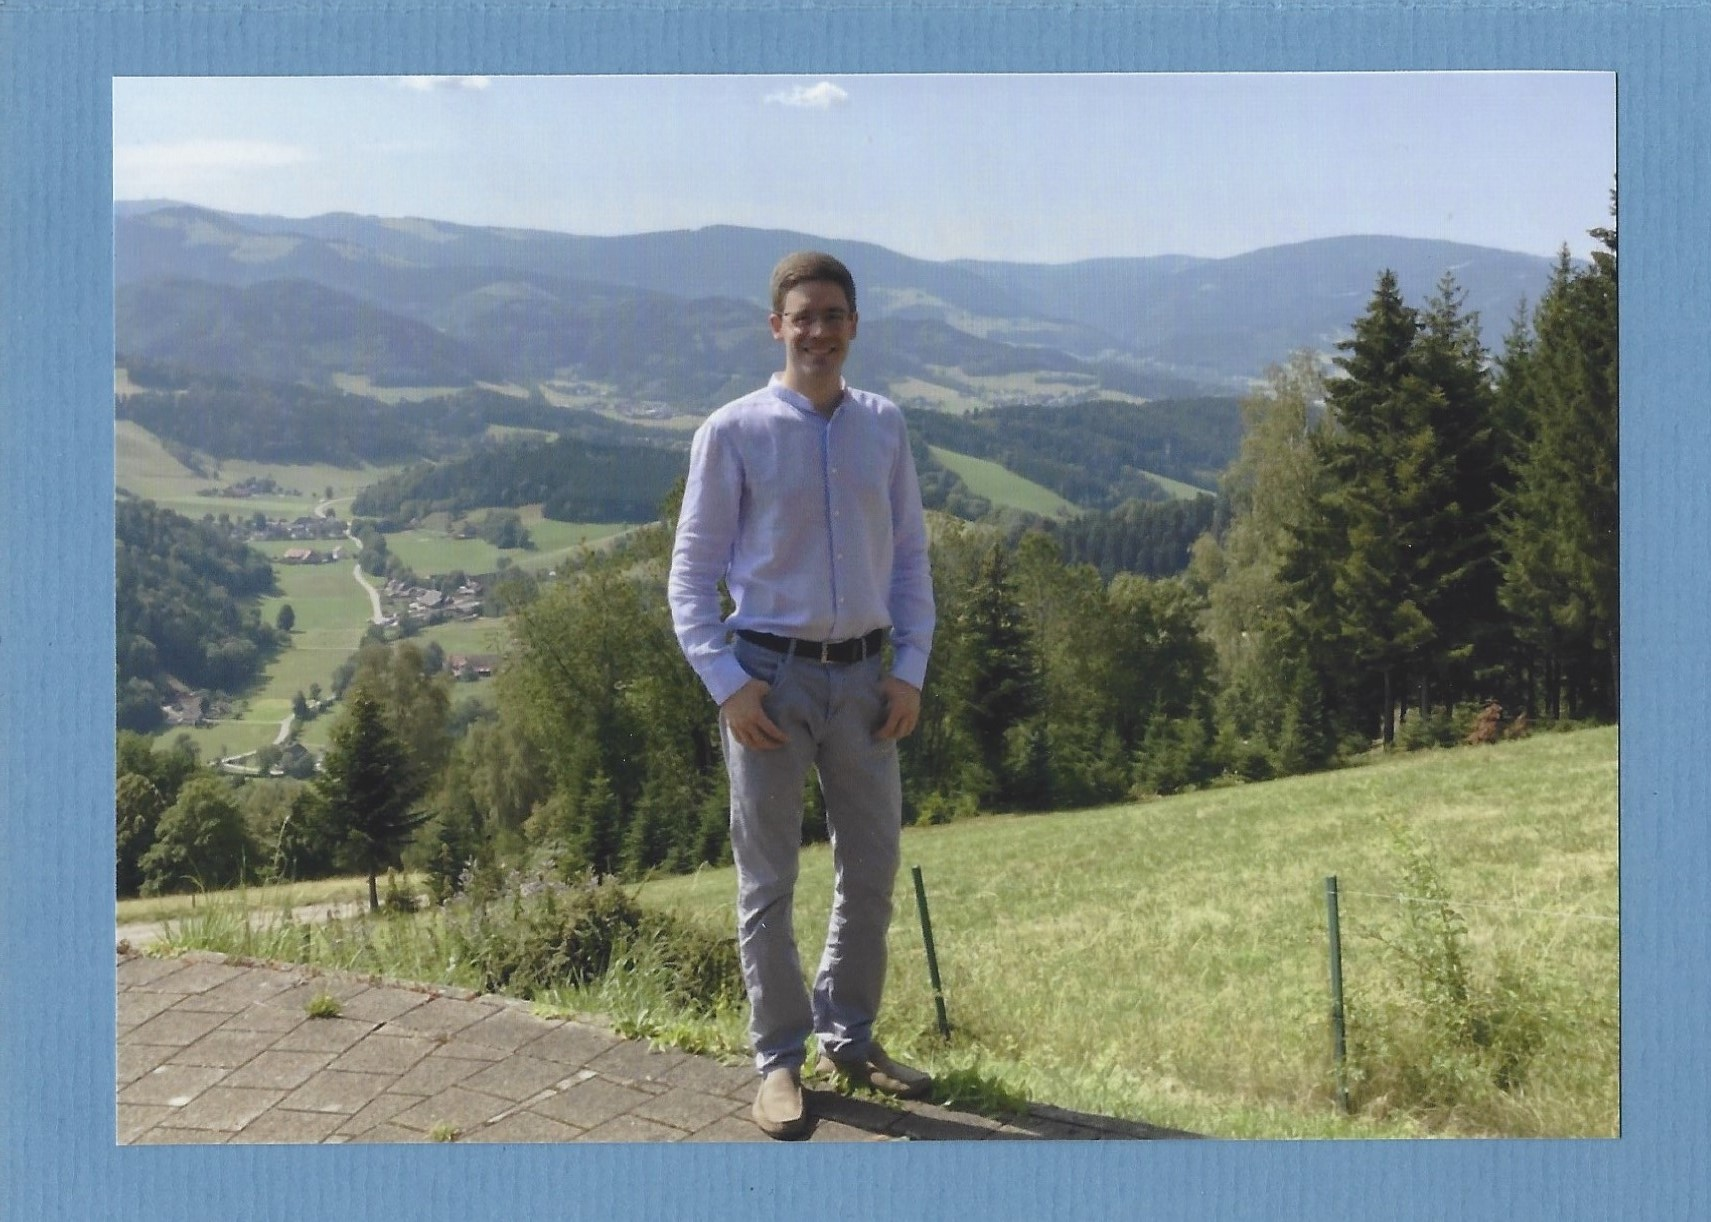 Mecklenburg Card Hereditary Prince Picture